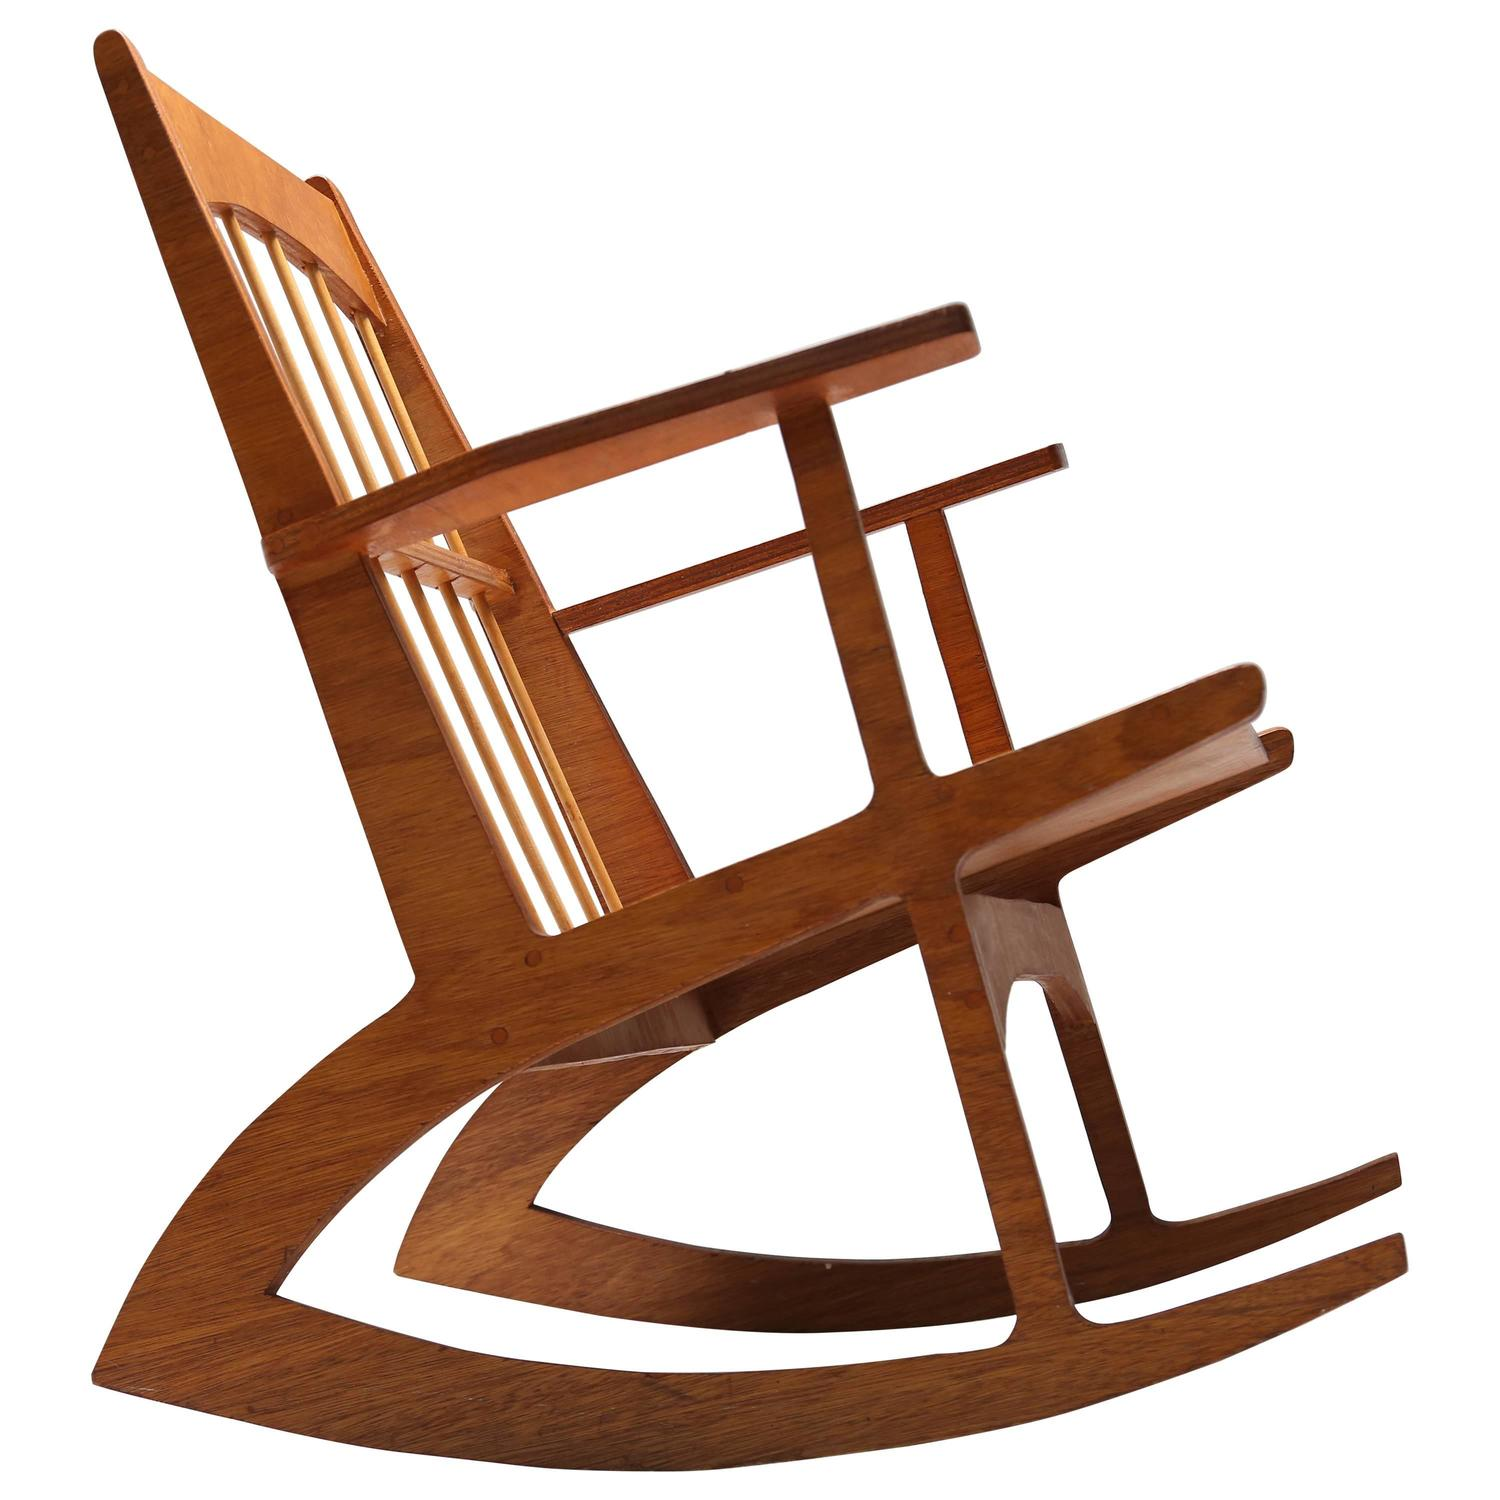 Rocking Chair circa 1960 For Sale at 1stdibs